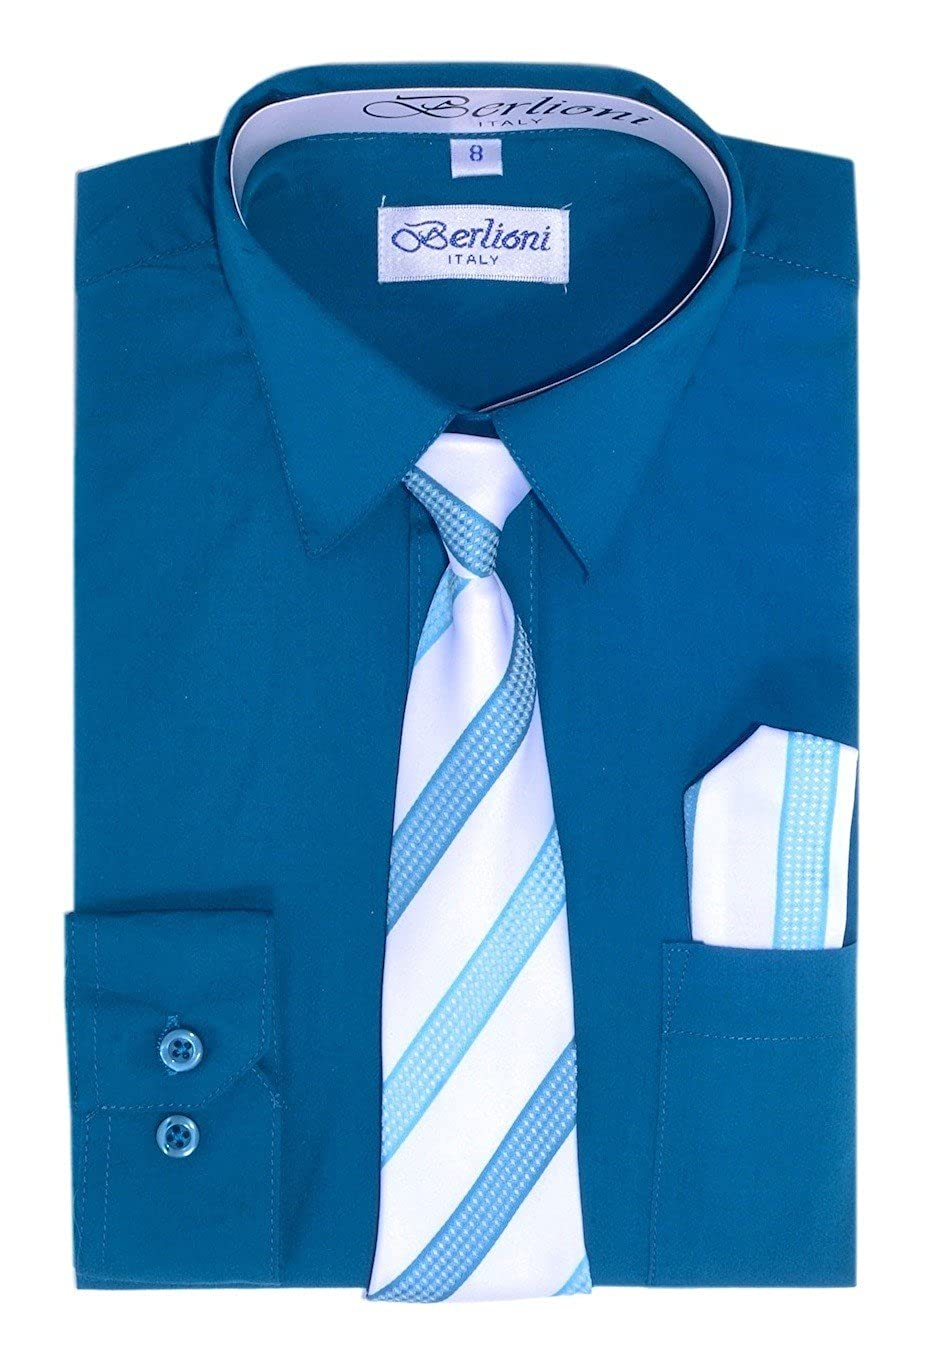 Boy's Dress Shirt, Necktie, and Hanky Set - Teal, Size 14 Boy's Dress Shirt N-727